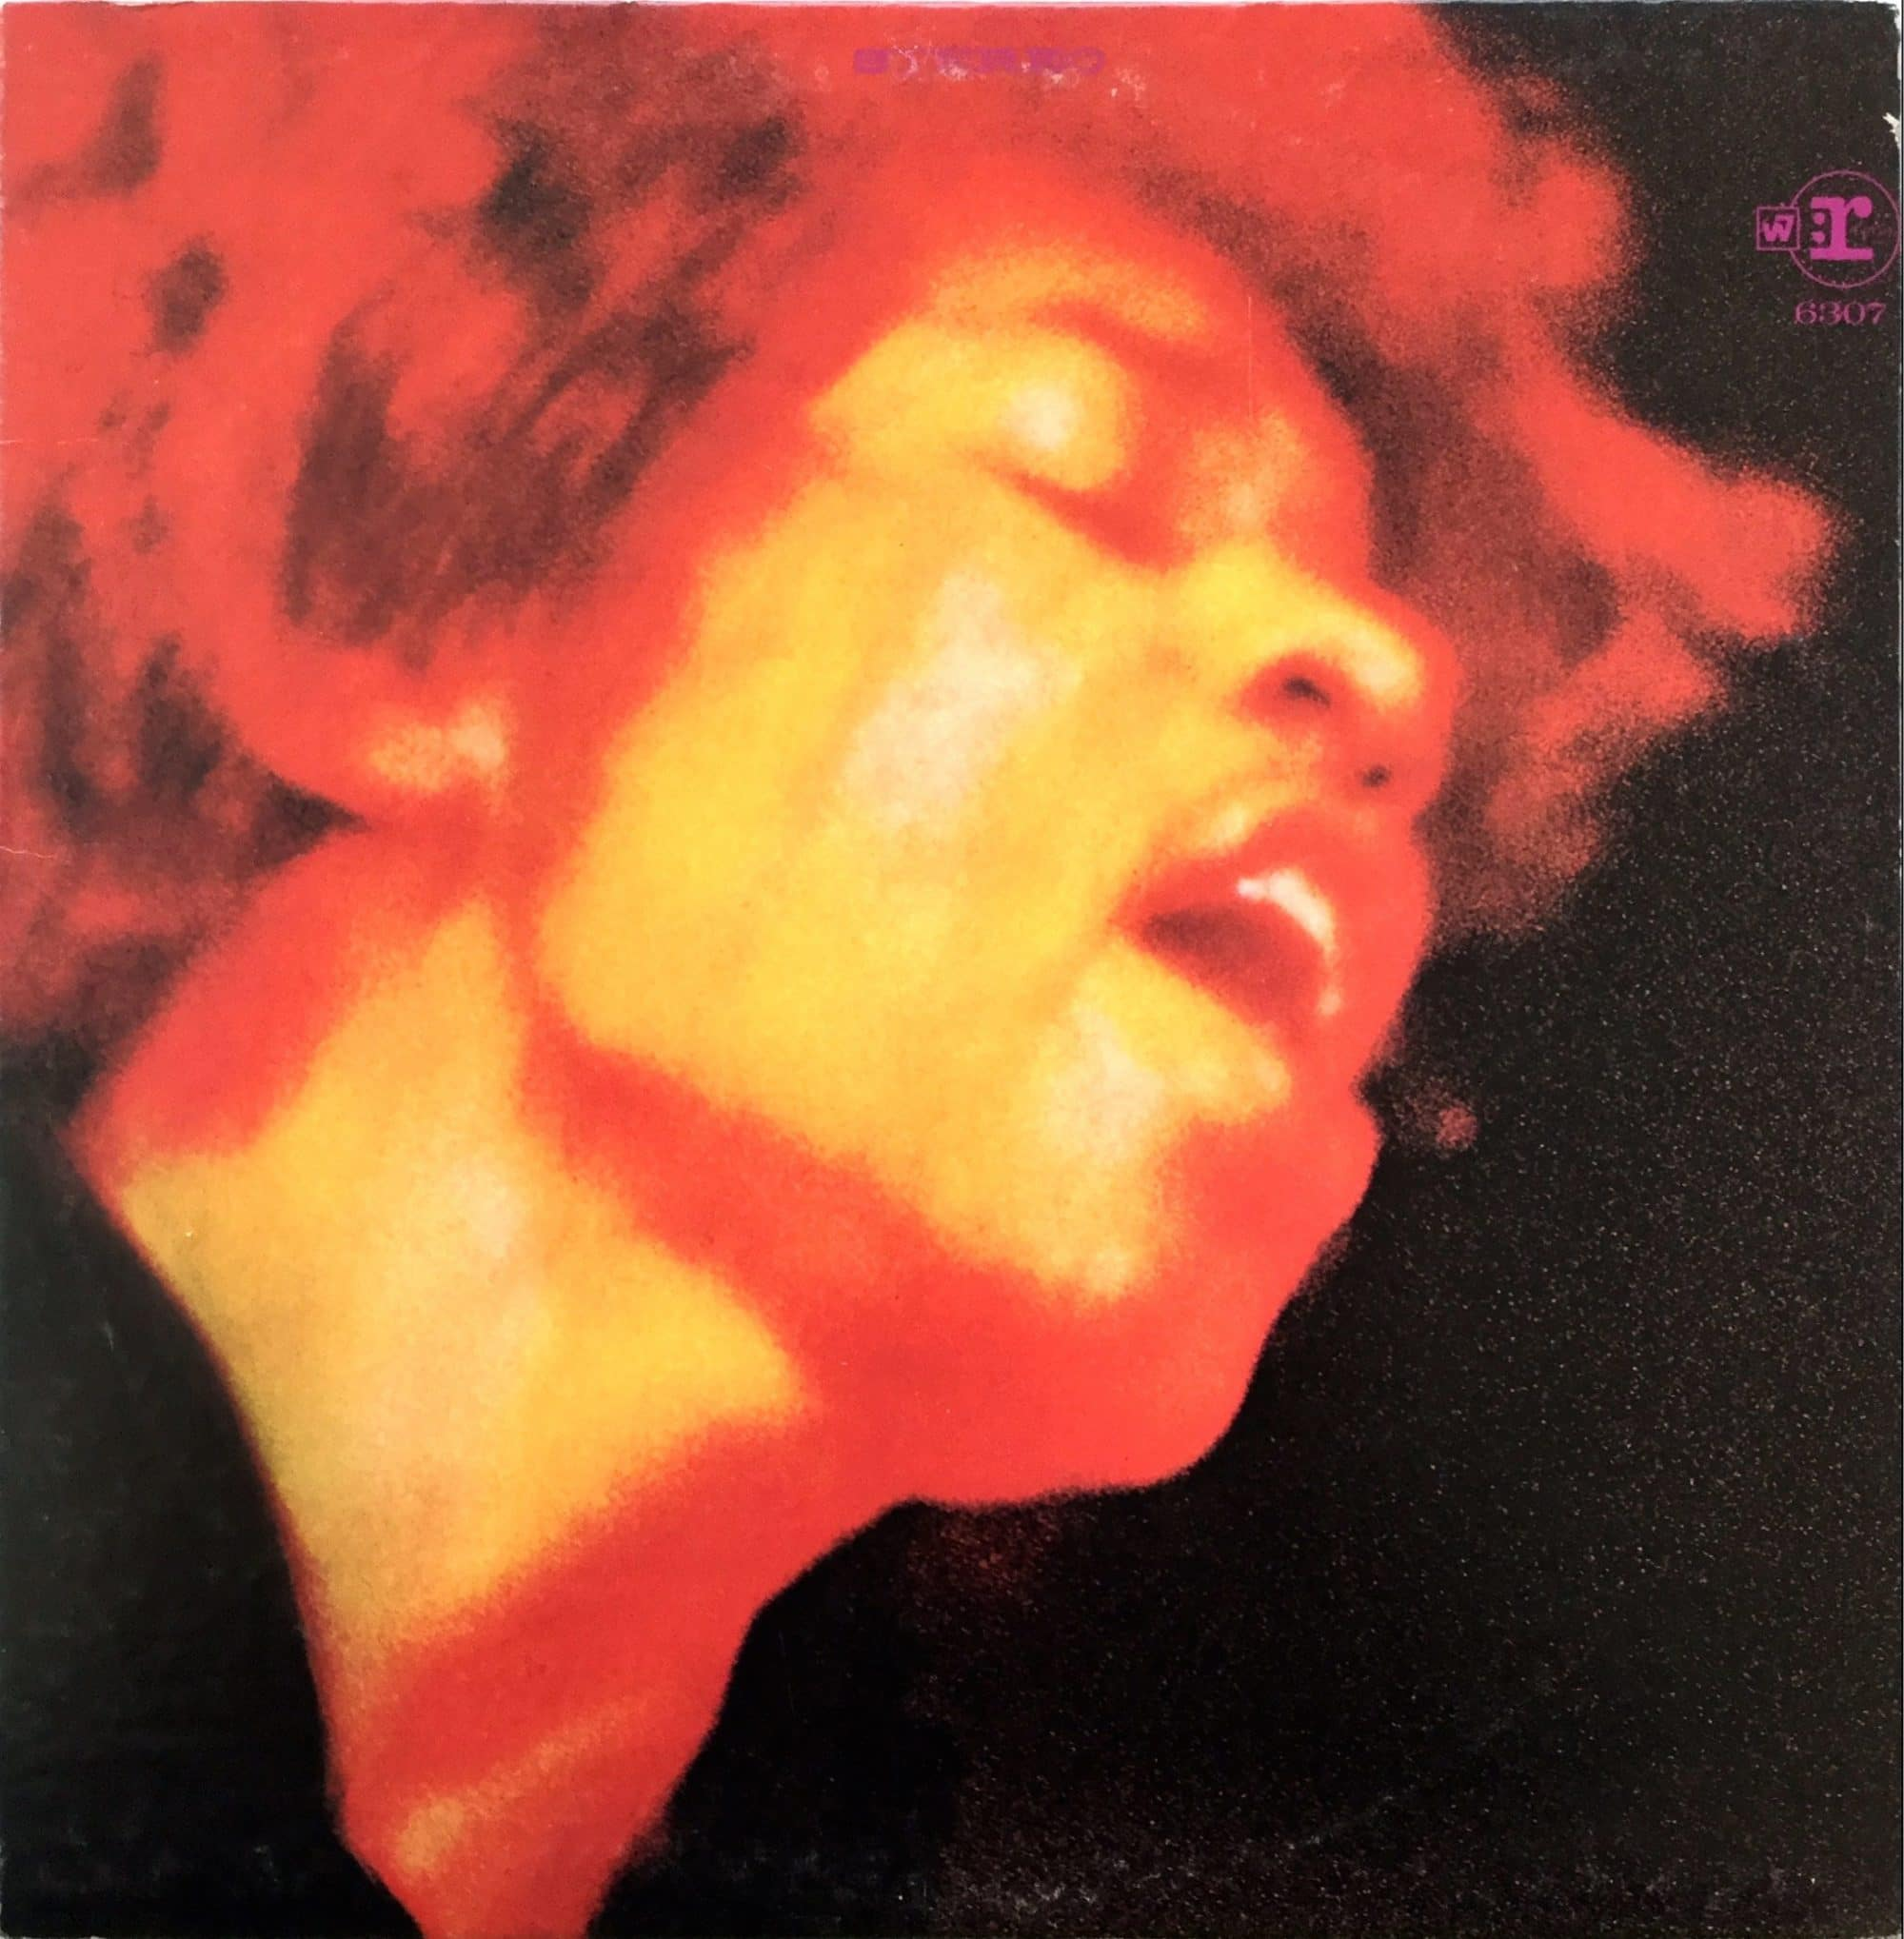 October 25: Electric Ladyland by The Jimi Hendrix ... |Electric Ladyland Album Cover